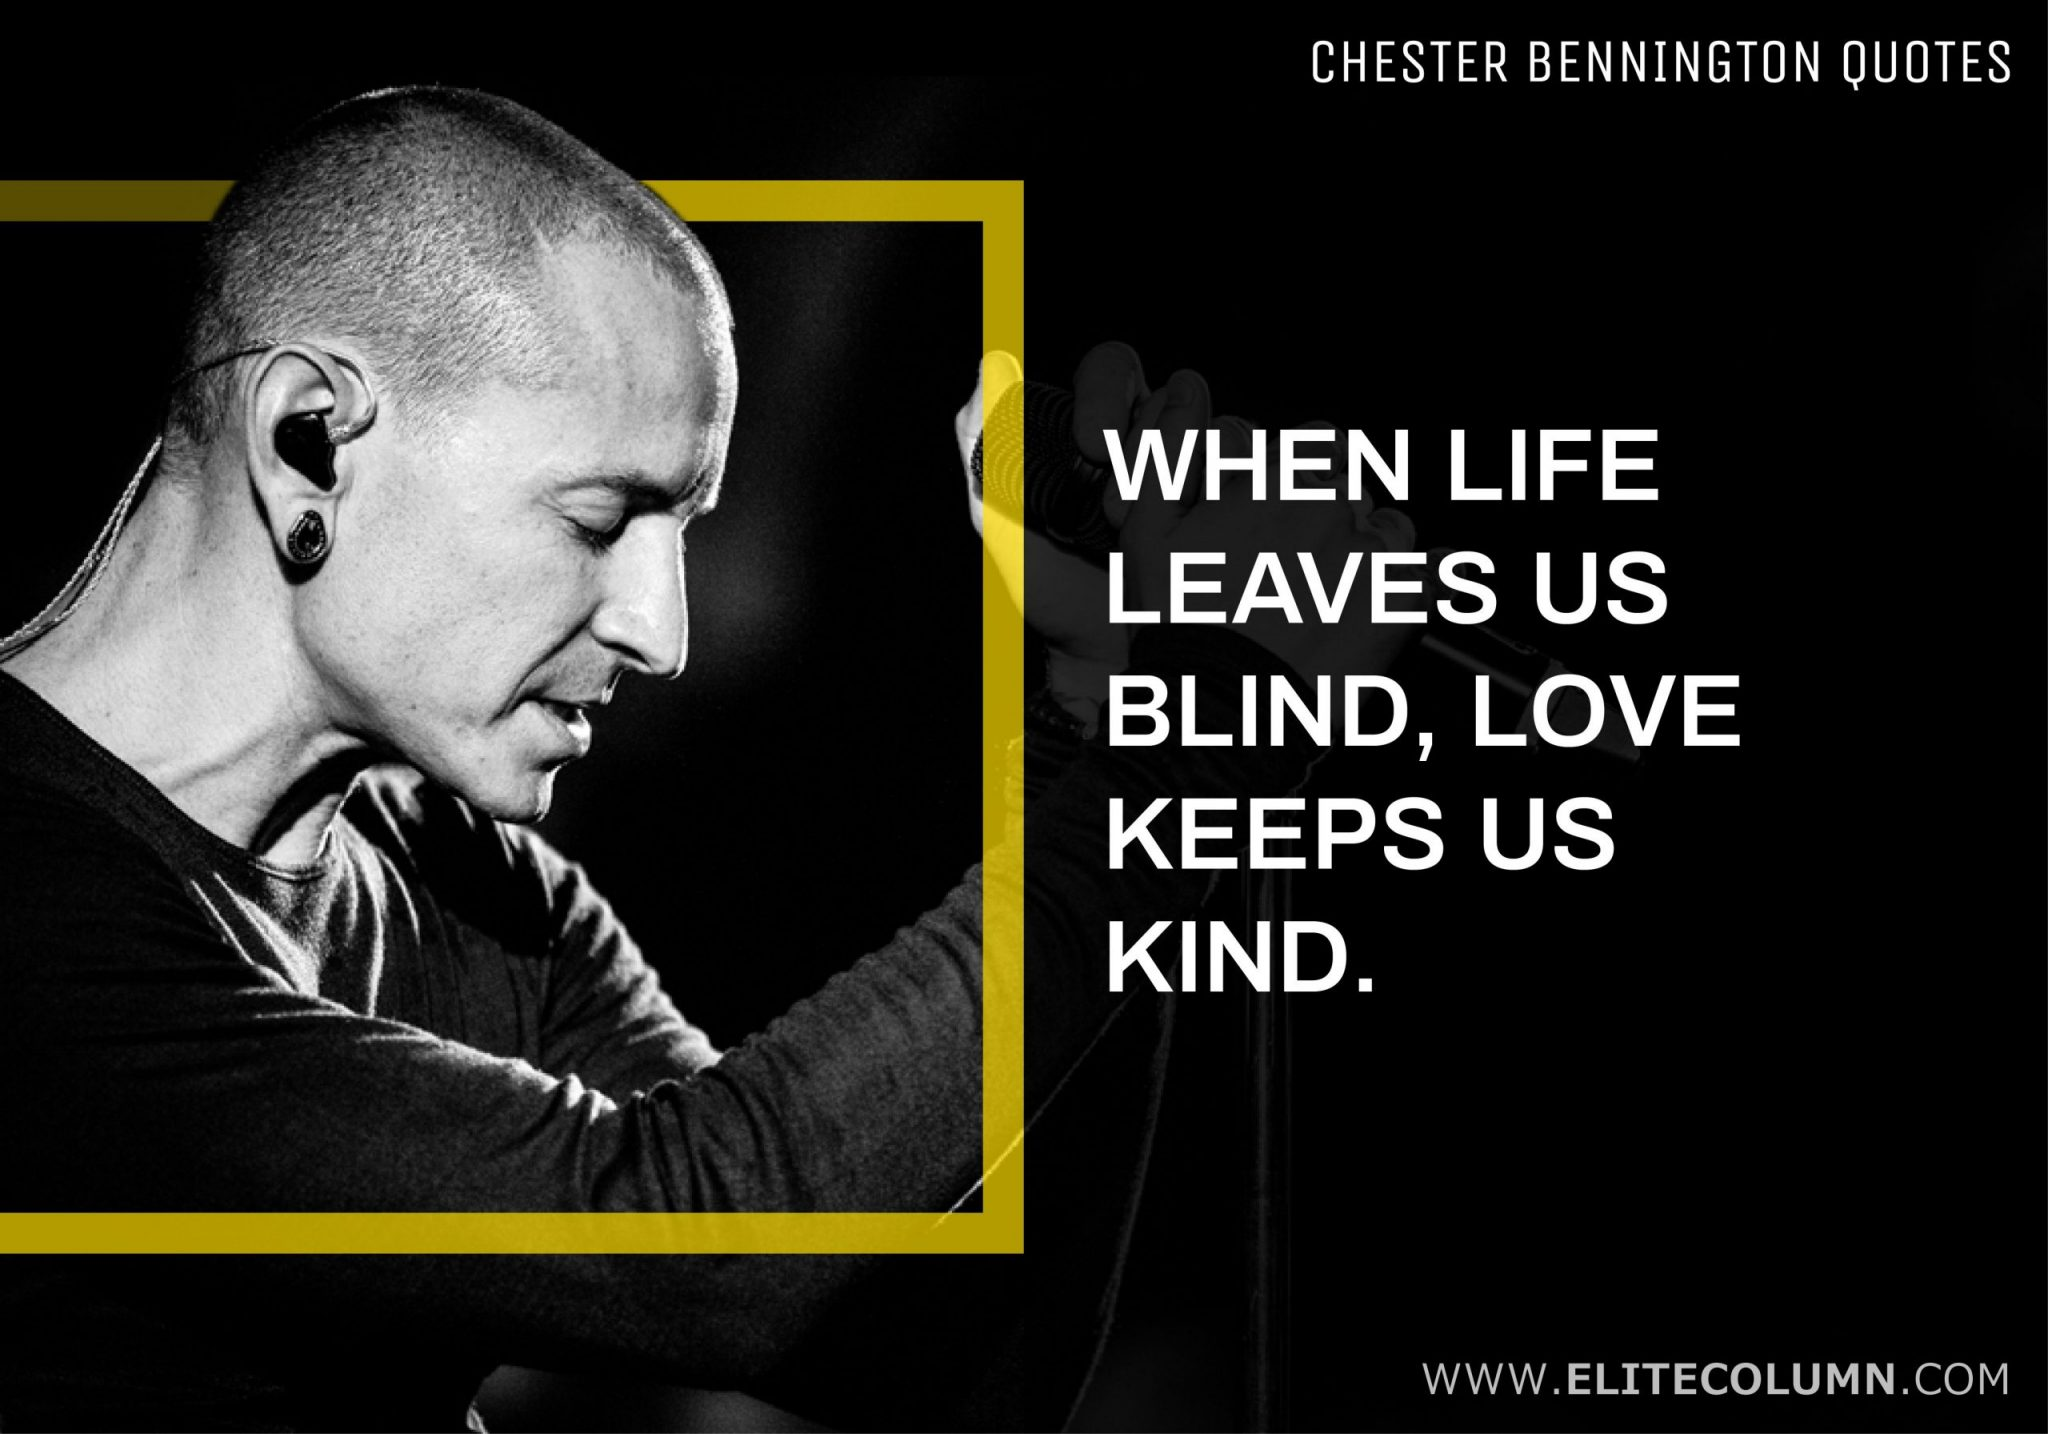 Chester Bennington Quotes (5)